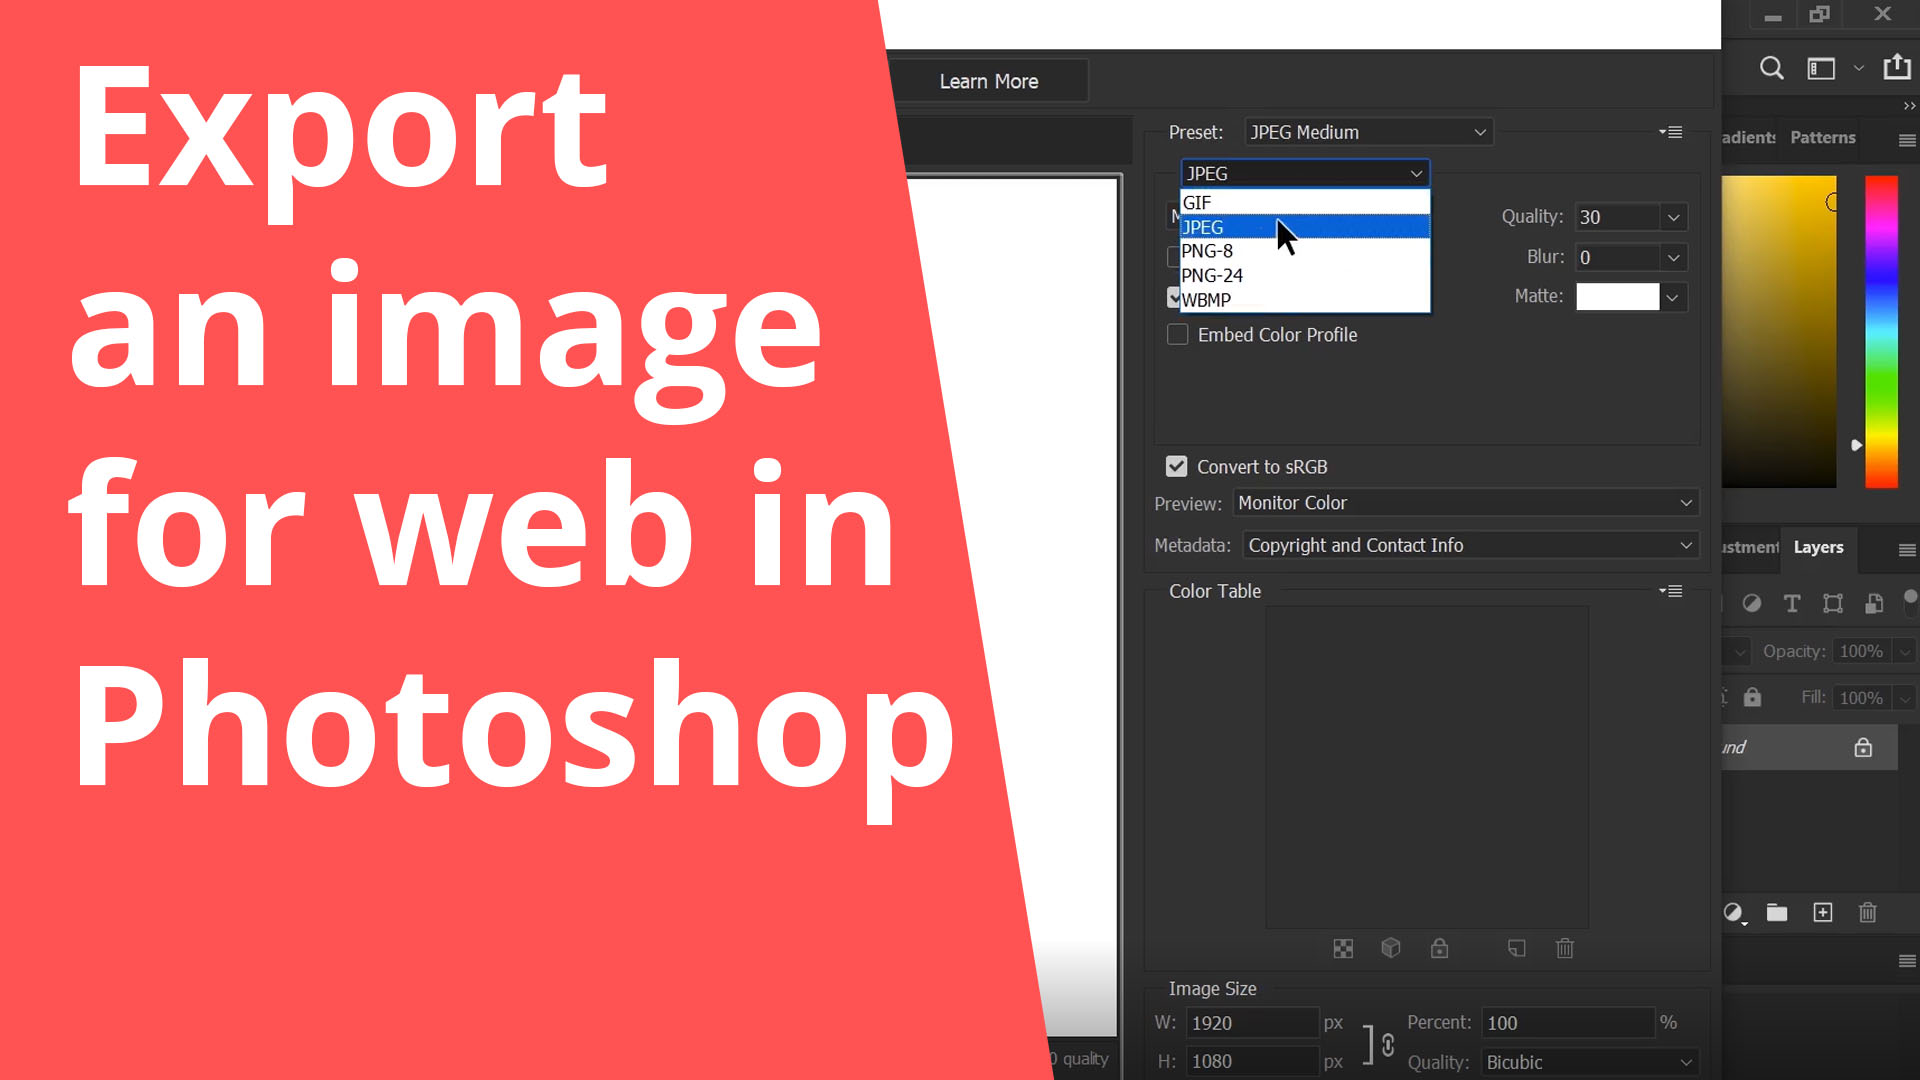 Export an image for a website in Photoshop